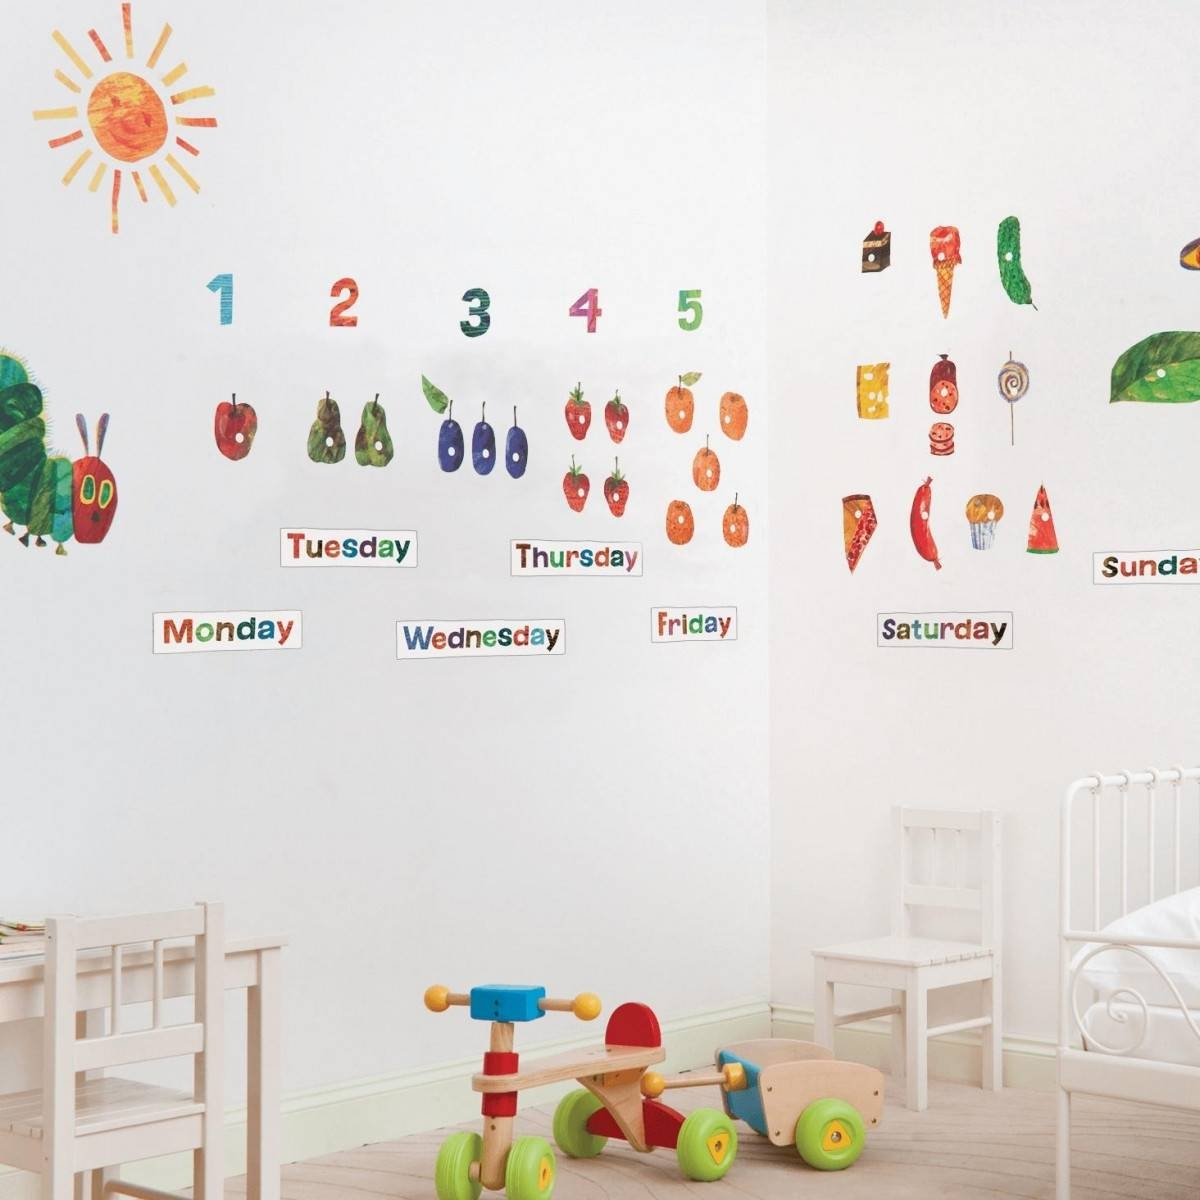 Buy The The Very Hungry Caterpillar 49 Room Decor Stickers From Throughout 2018 The Very Hungry Caterpillar Wall Art (View 5 of 25)